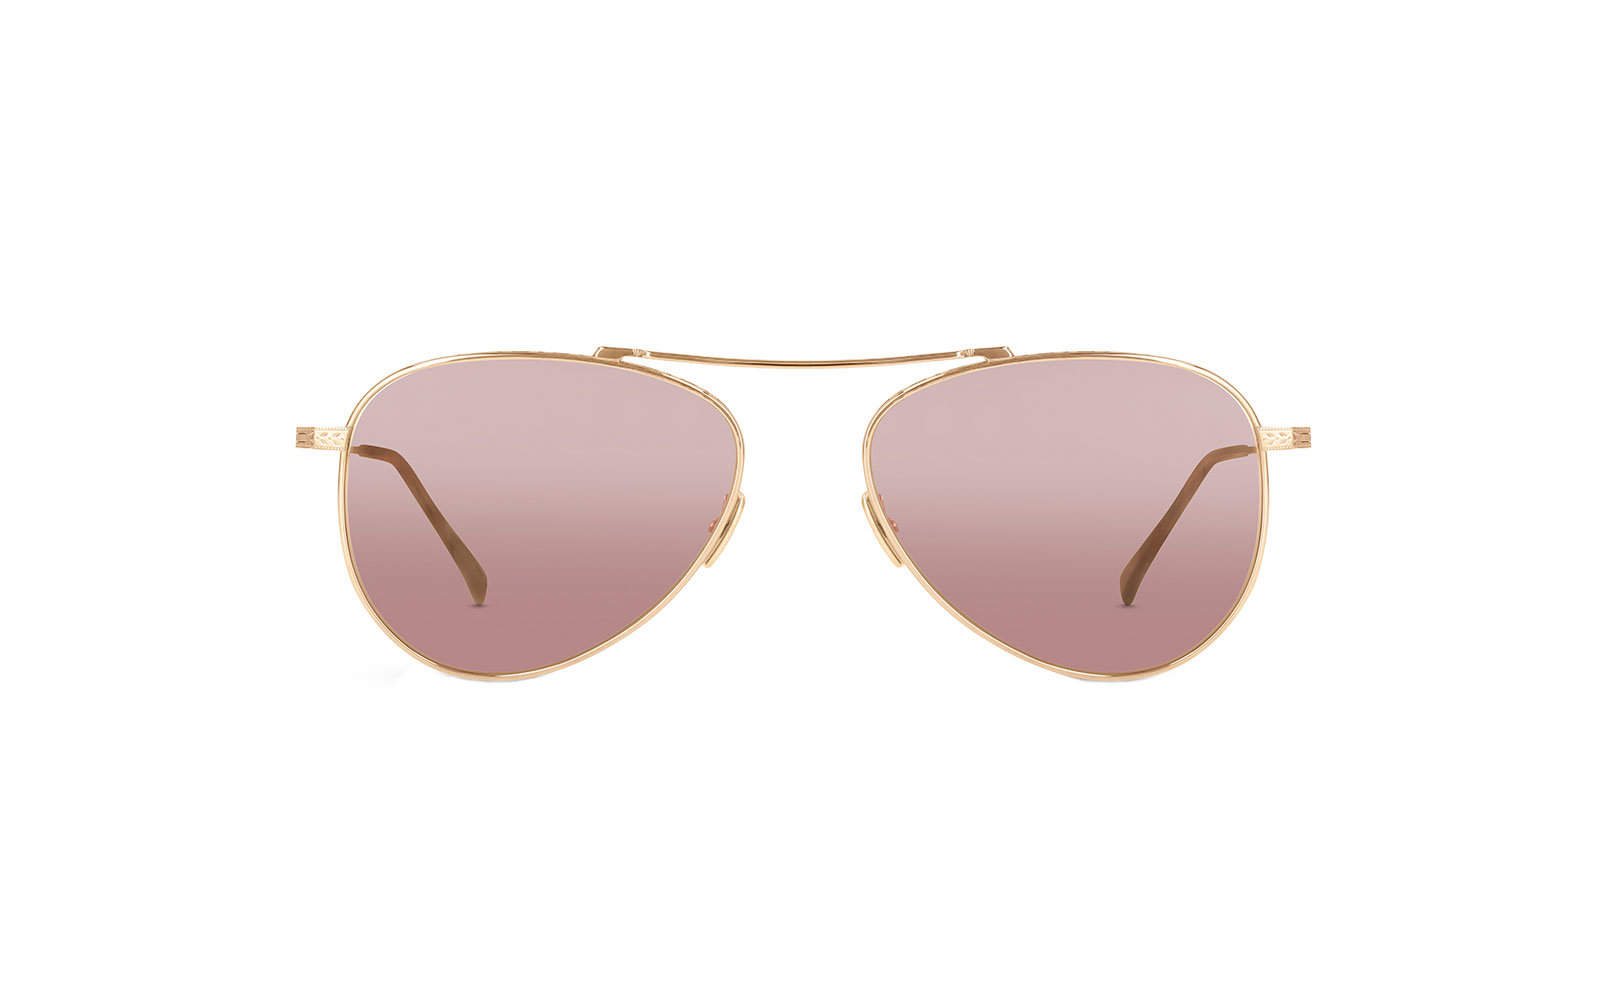 Mr. Leight sunglasses